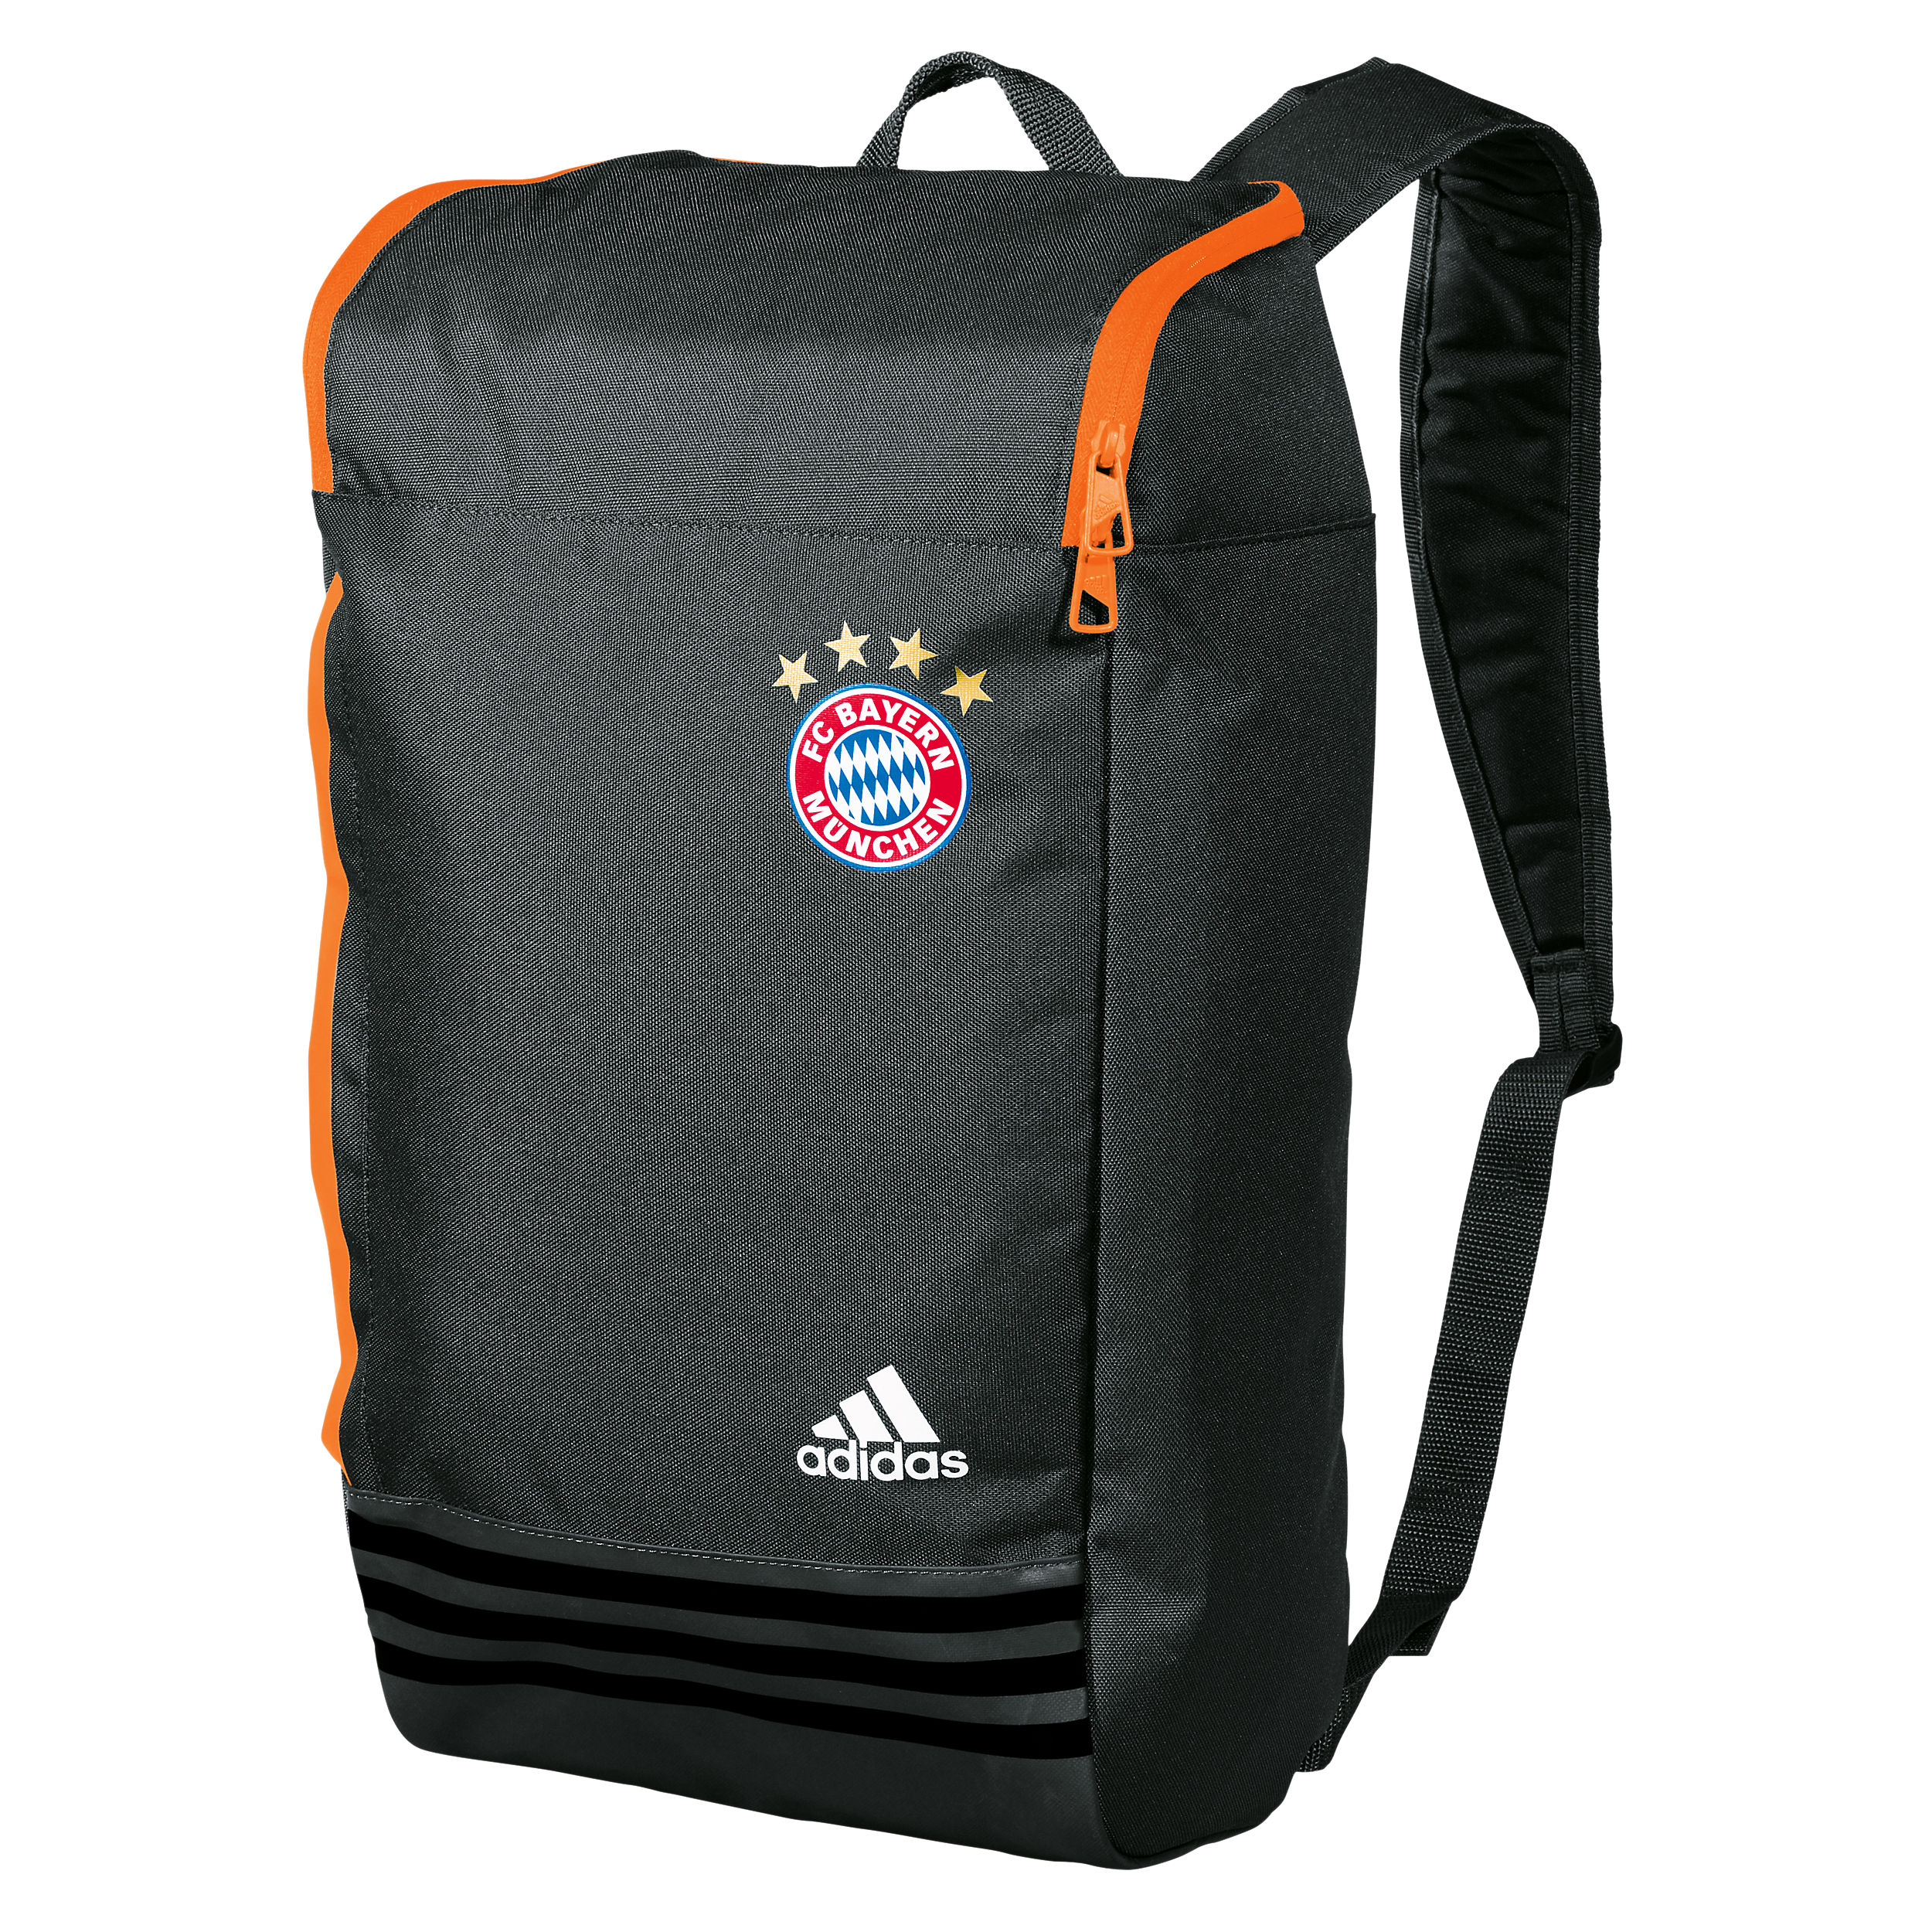 f4533227fba6 Buy adidas trolley backpack   OFF49% Discounted